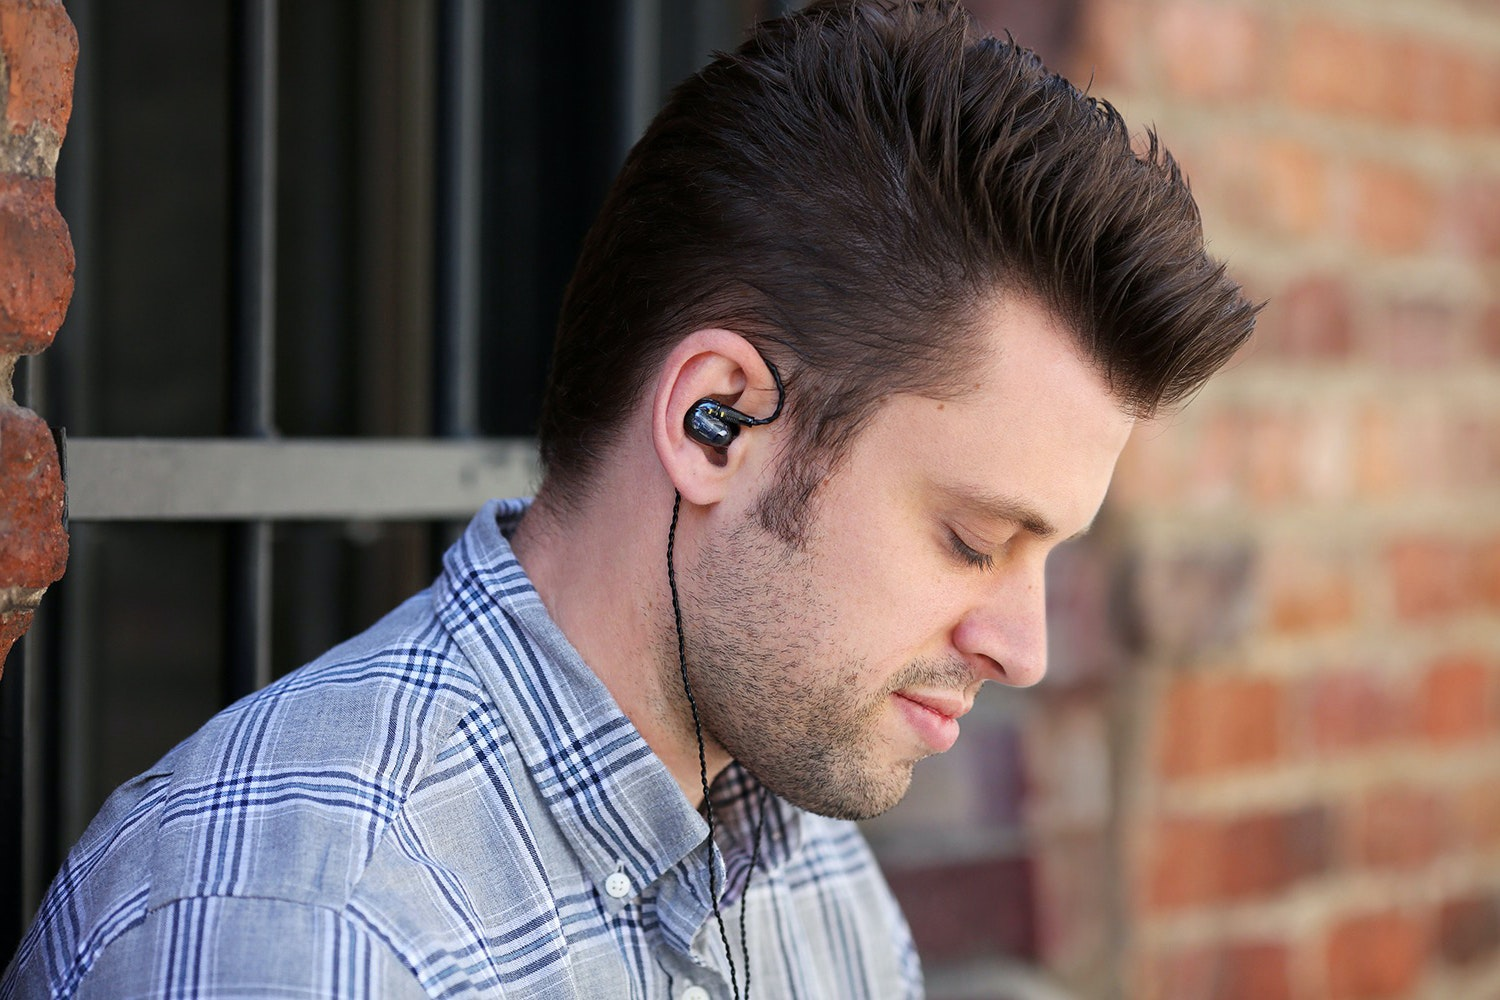 Massdrop x NuForce EDC In-Ear Monitors